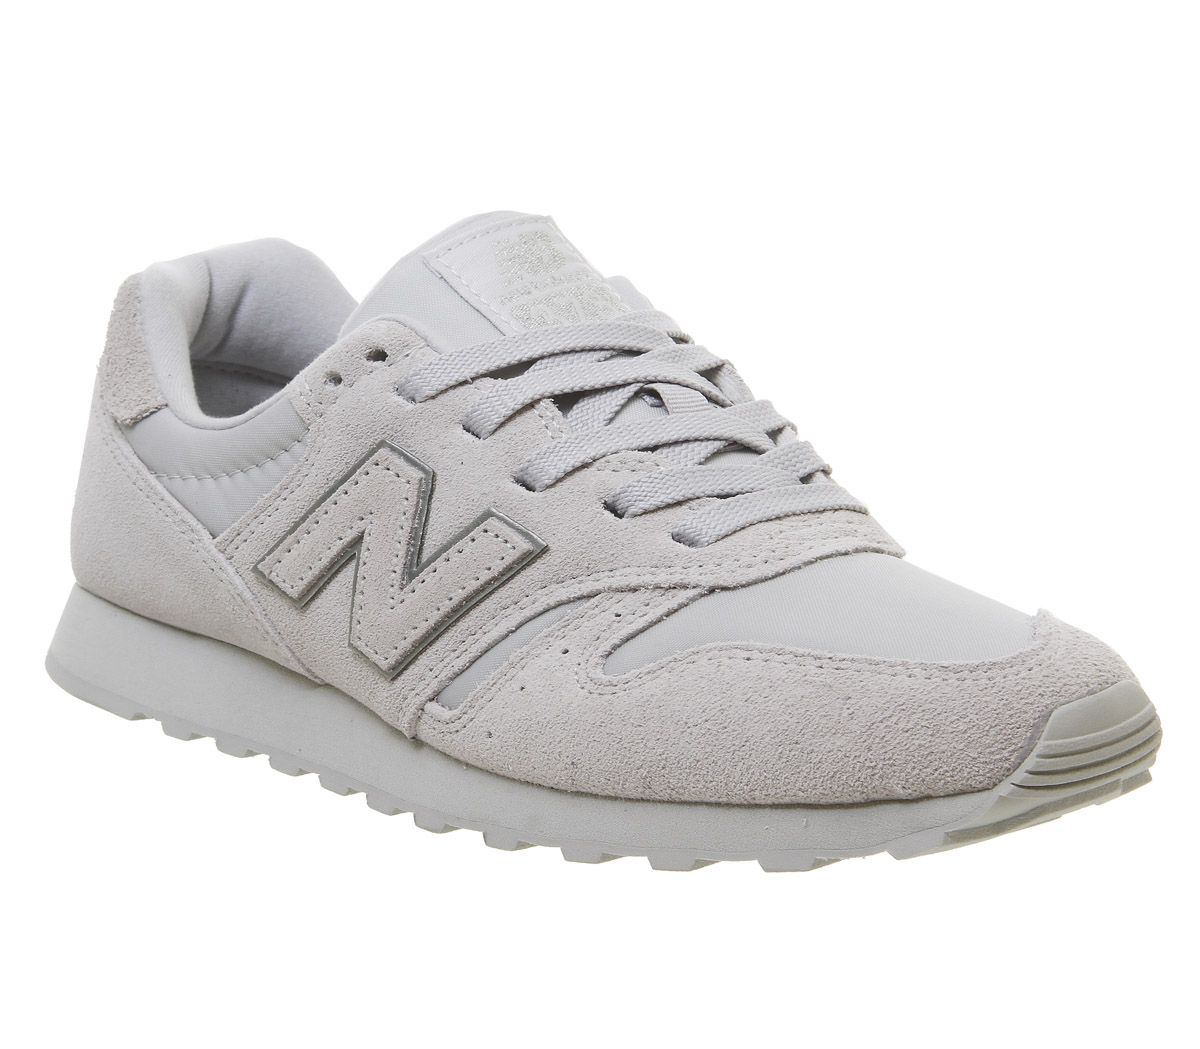 35d6fc5387 New Balance Wl373 Trainers Overcast Silver Metallic Exclusive - Hers ...